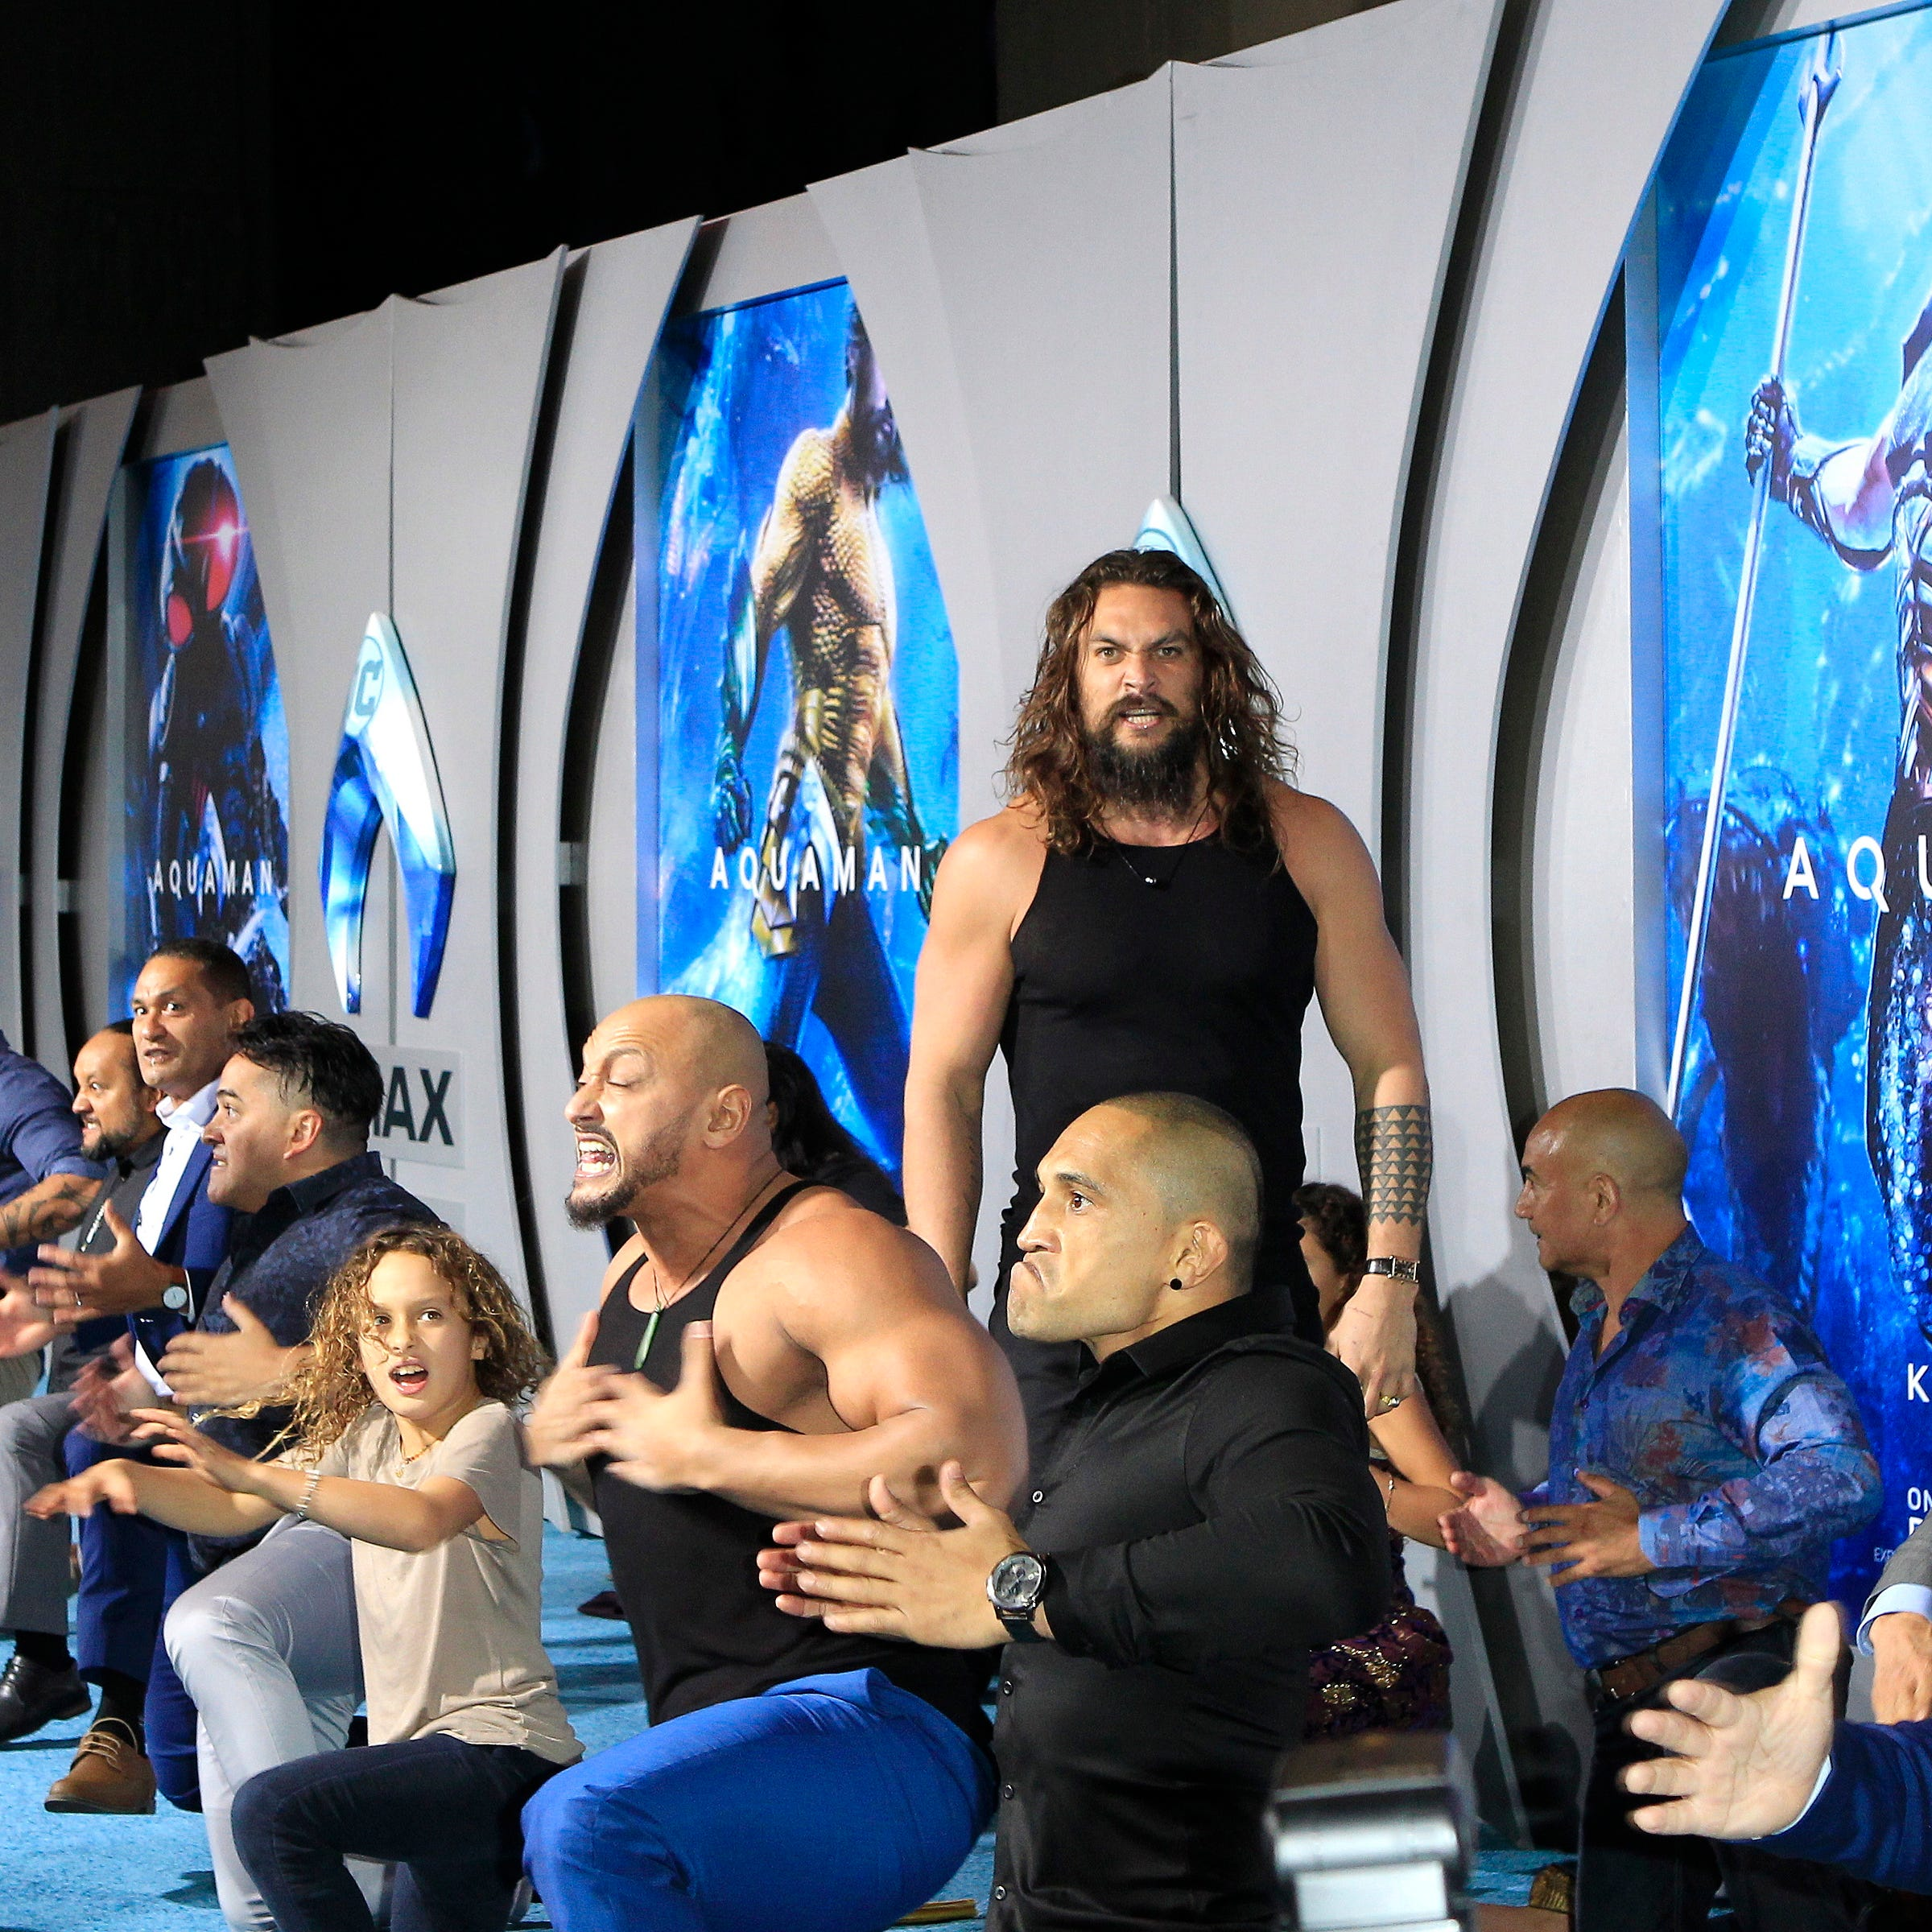 Jason Momoa performs the Haka at the Aquaman premiere with his cast mates and kids.